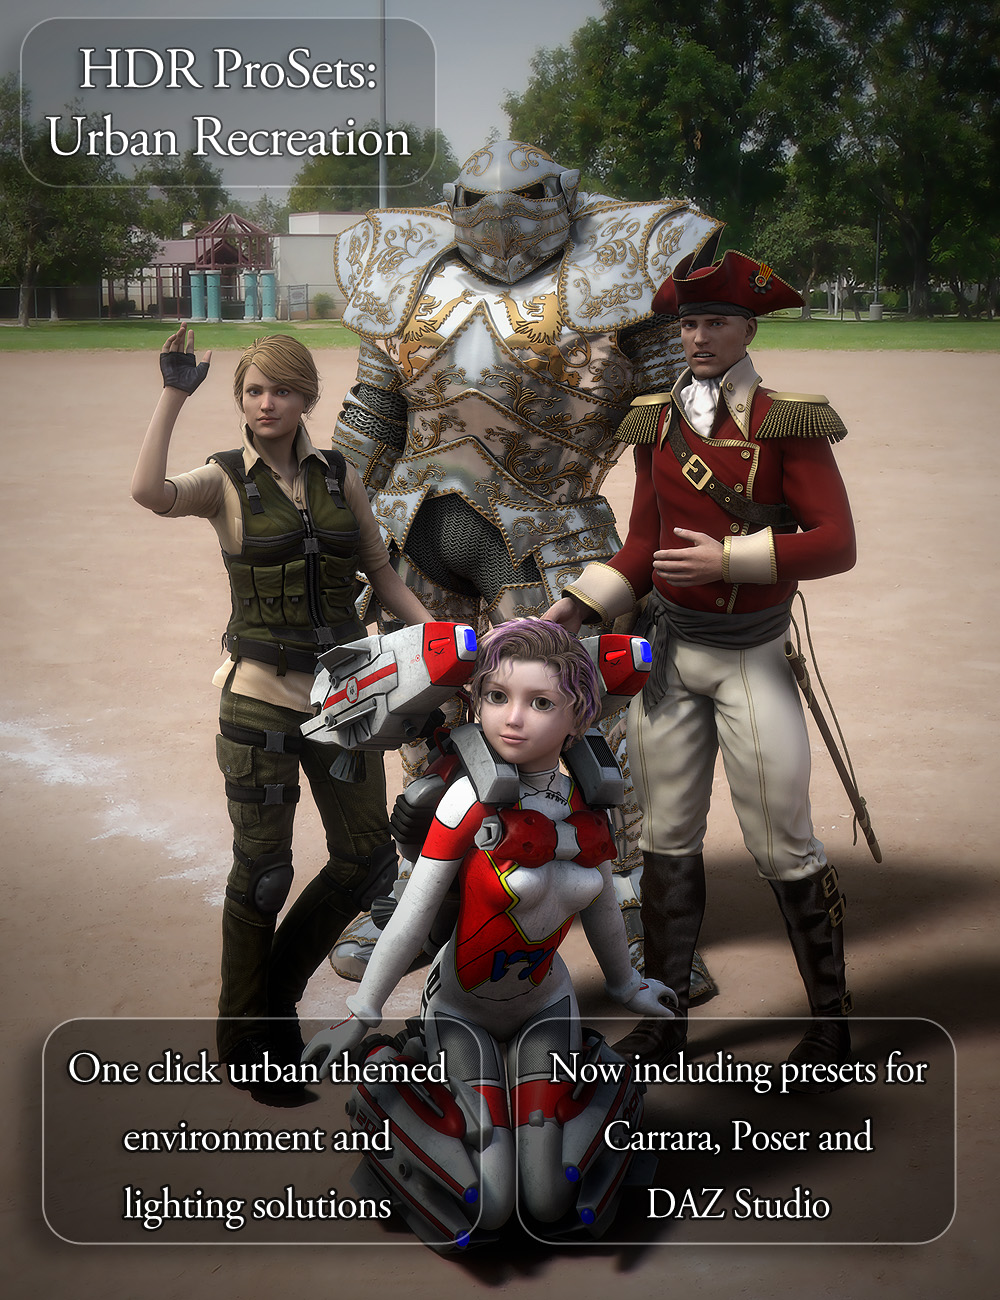 HDR Pro Sets Urban Recreation by: DimensionTheory, 3D Models by Daz 3D